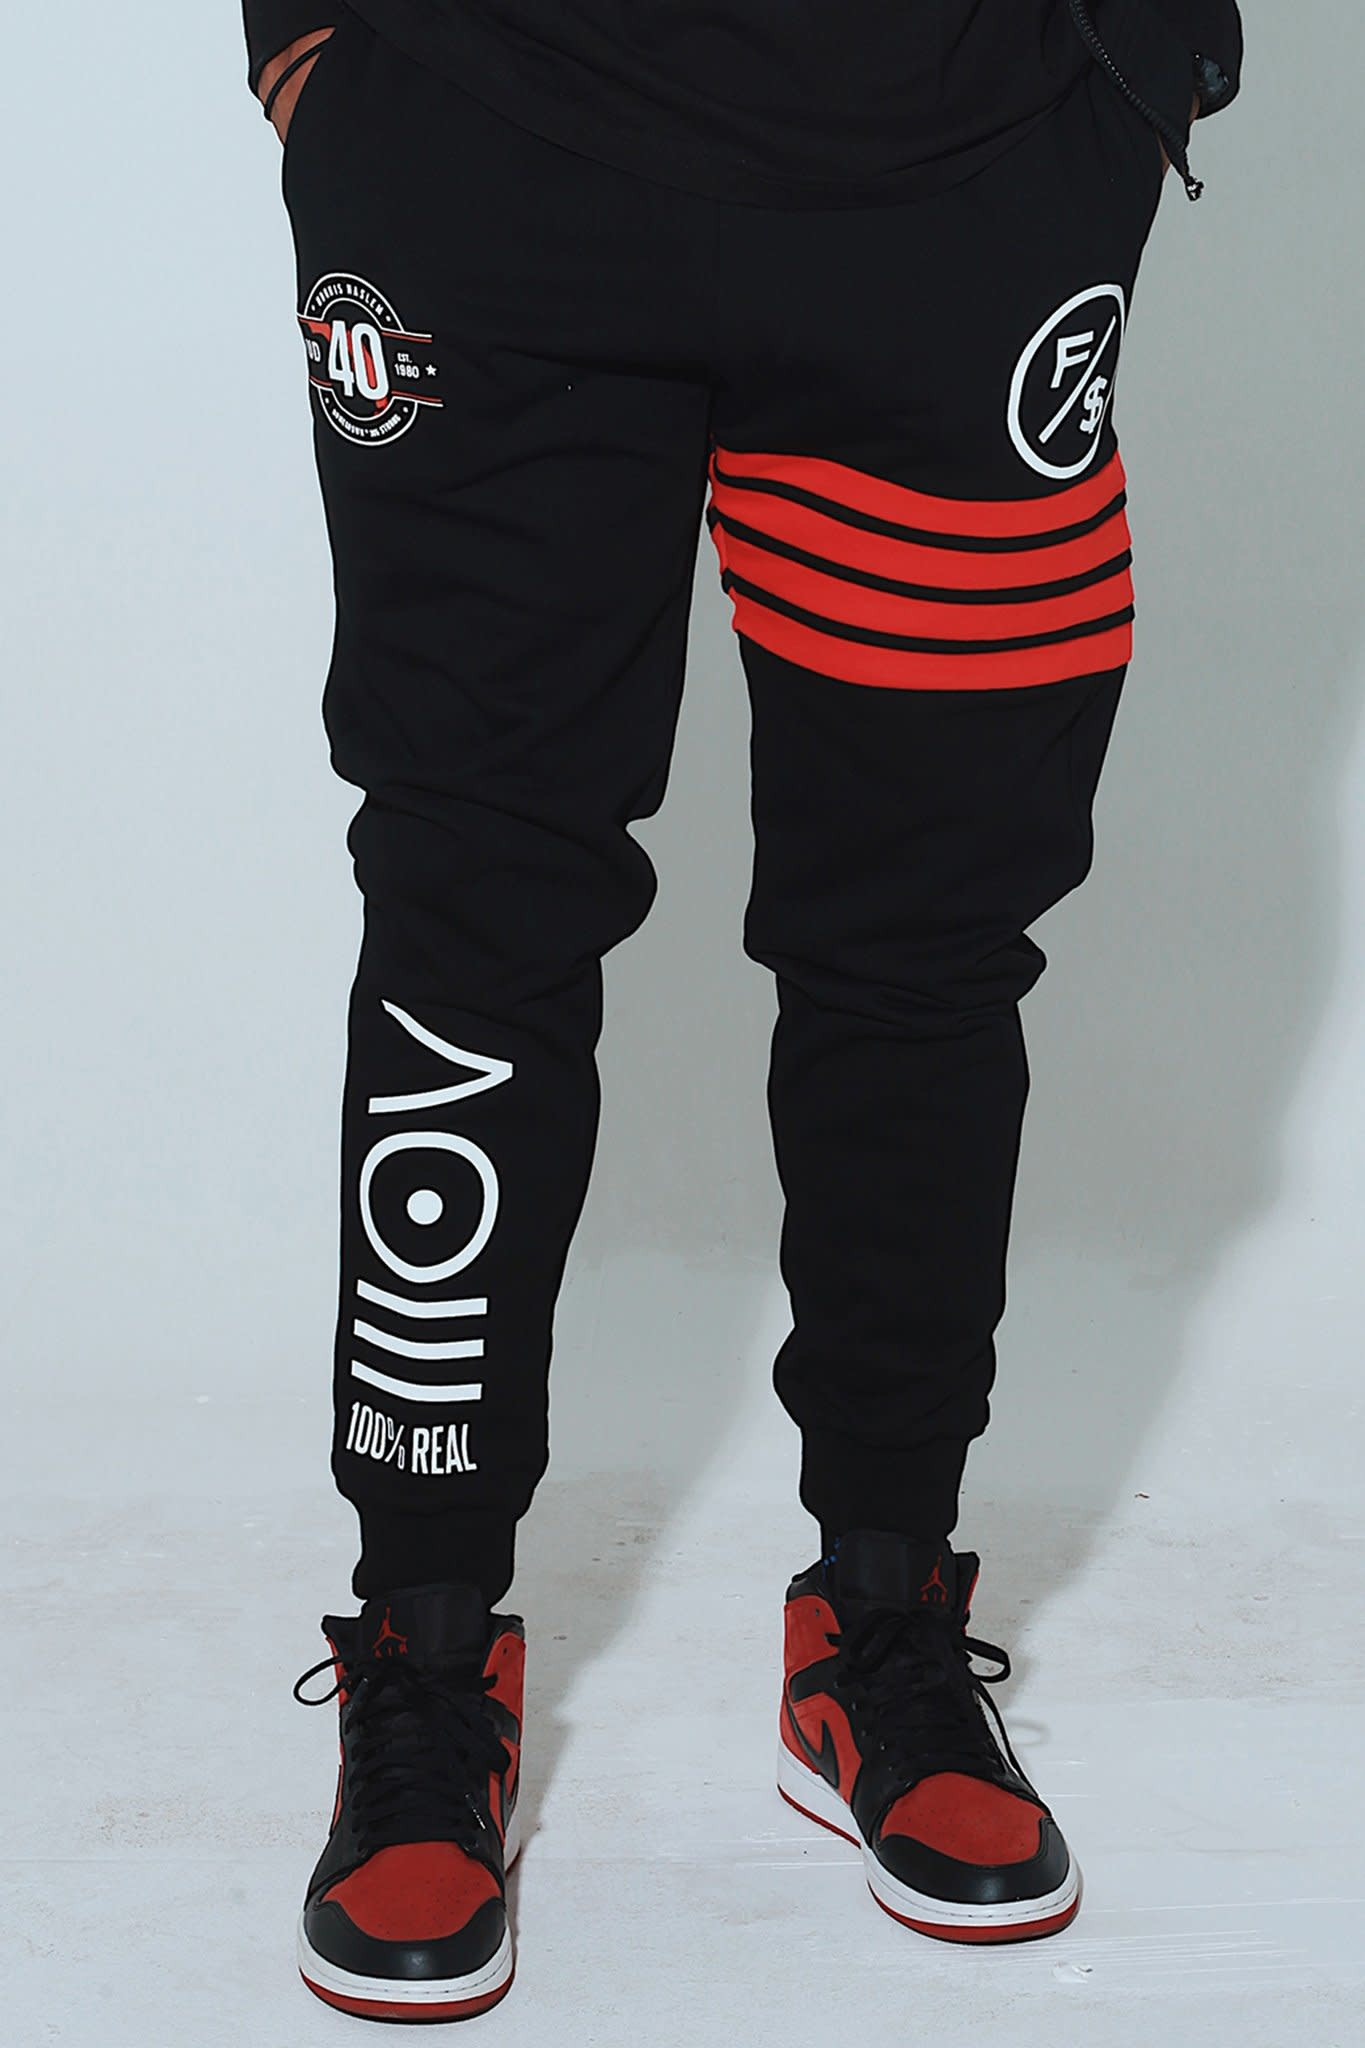 UDFS HOMEGROWN SWEATSUIT PANTS-2